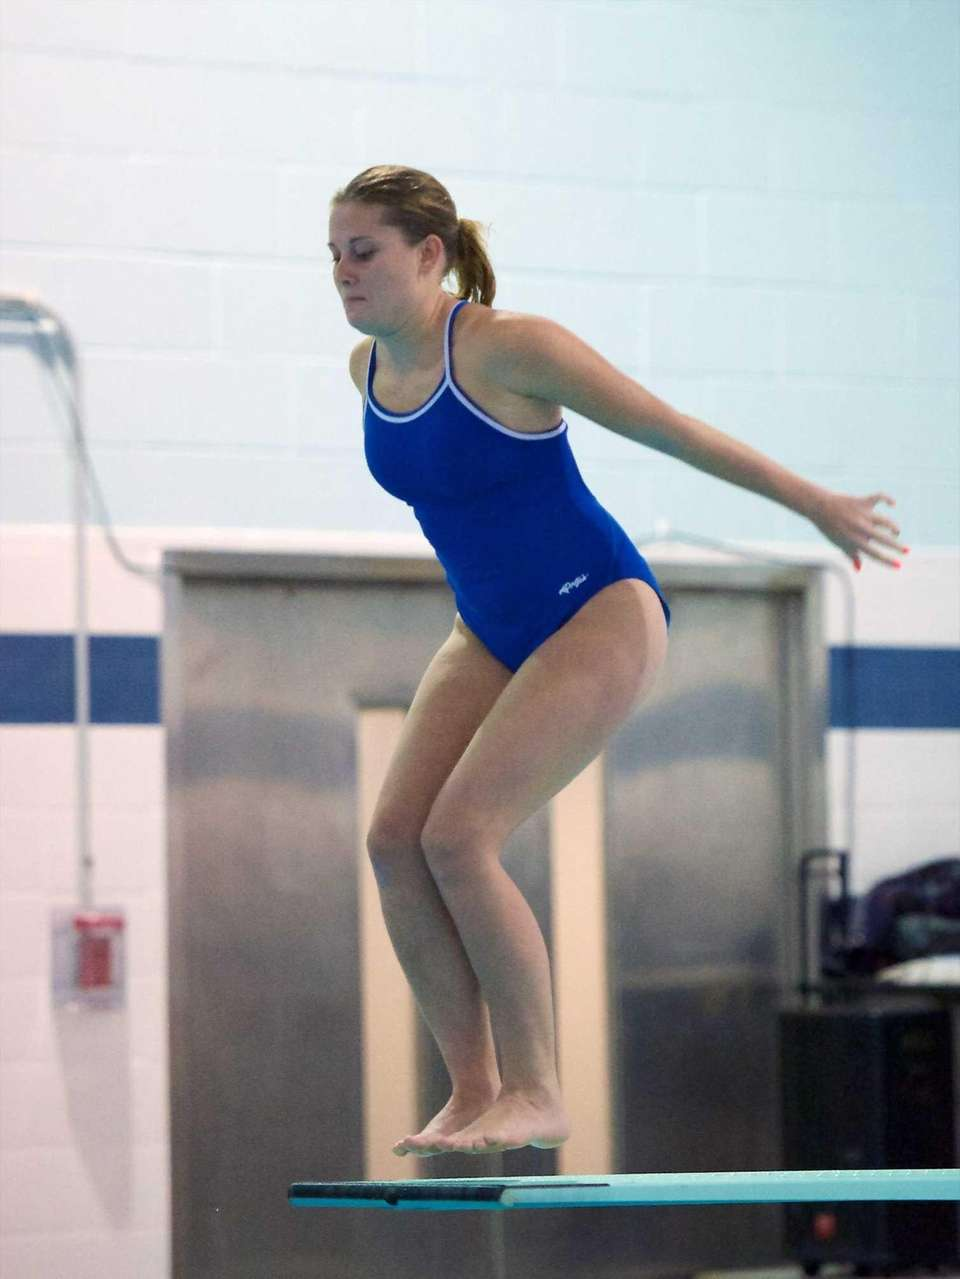 Ashley Carter from West Islip competes in the